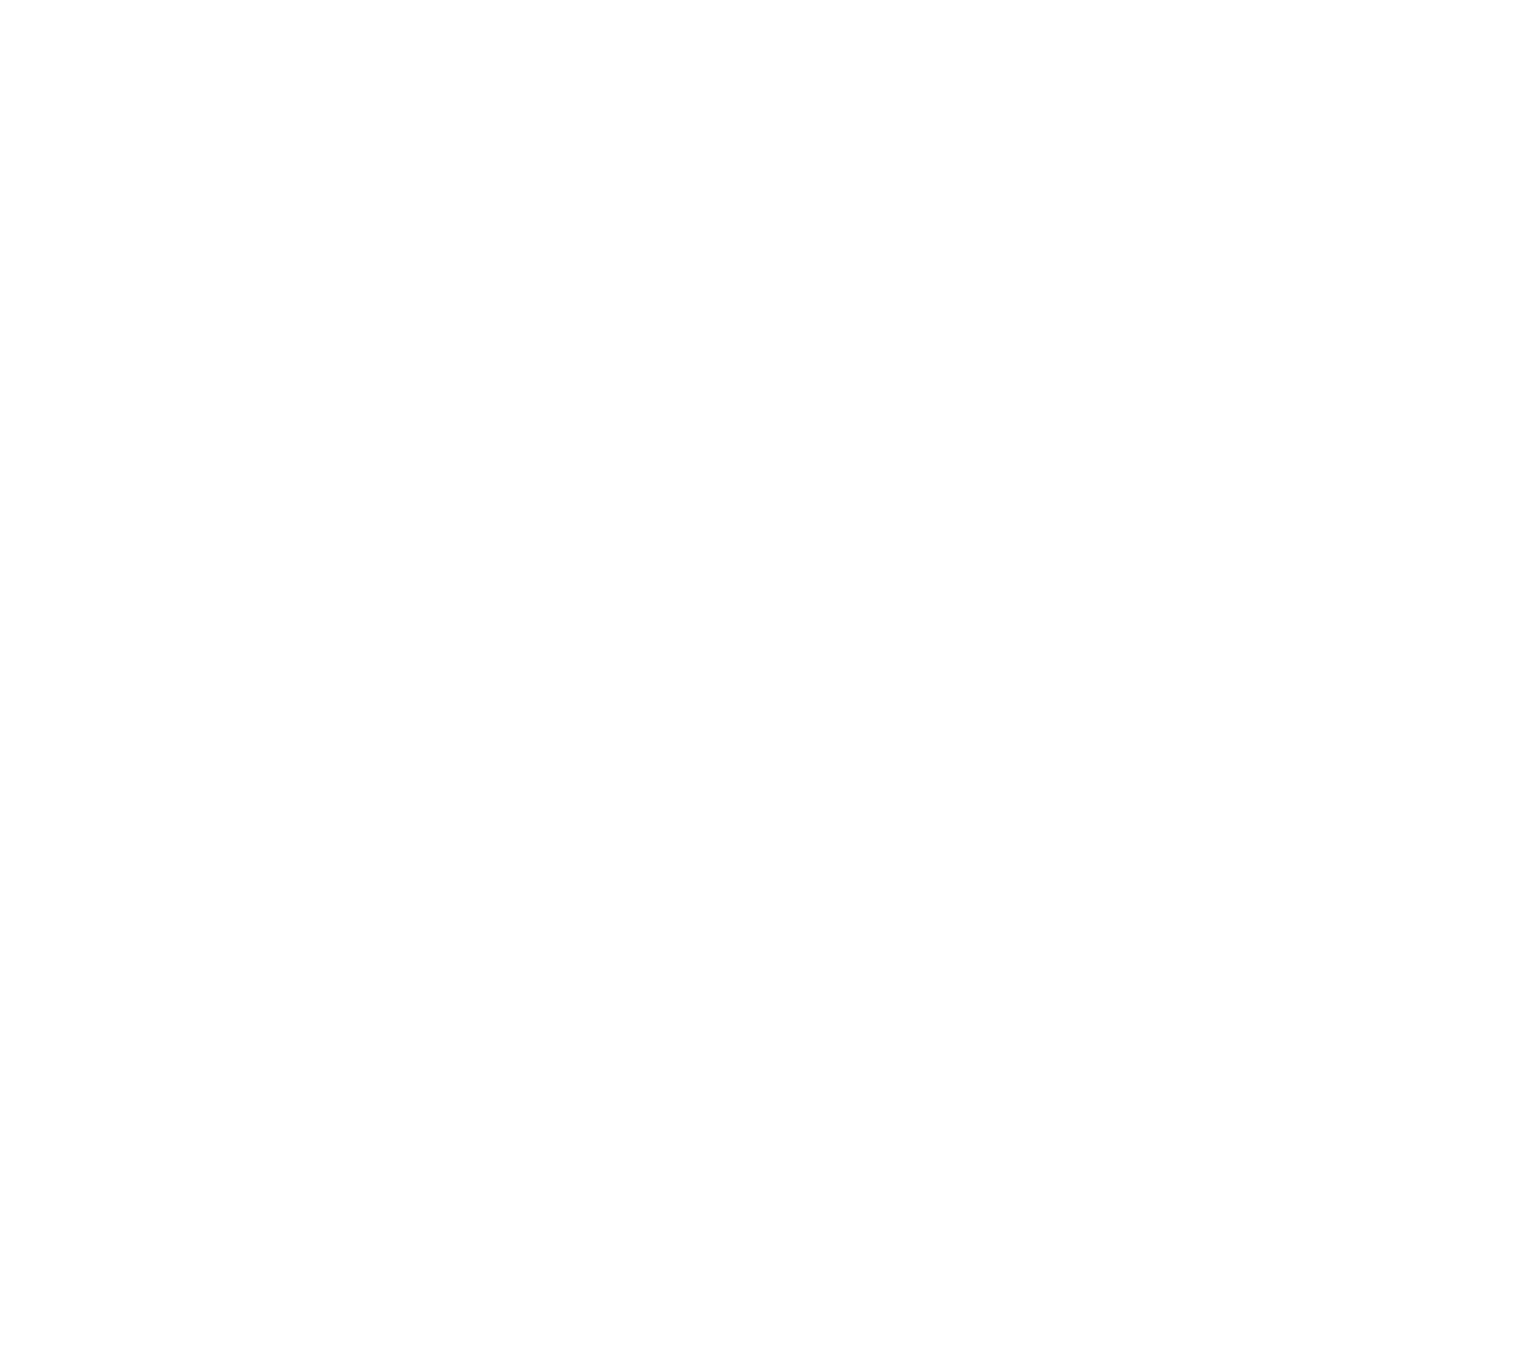 Tax Resolution Task Force